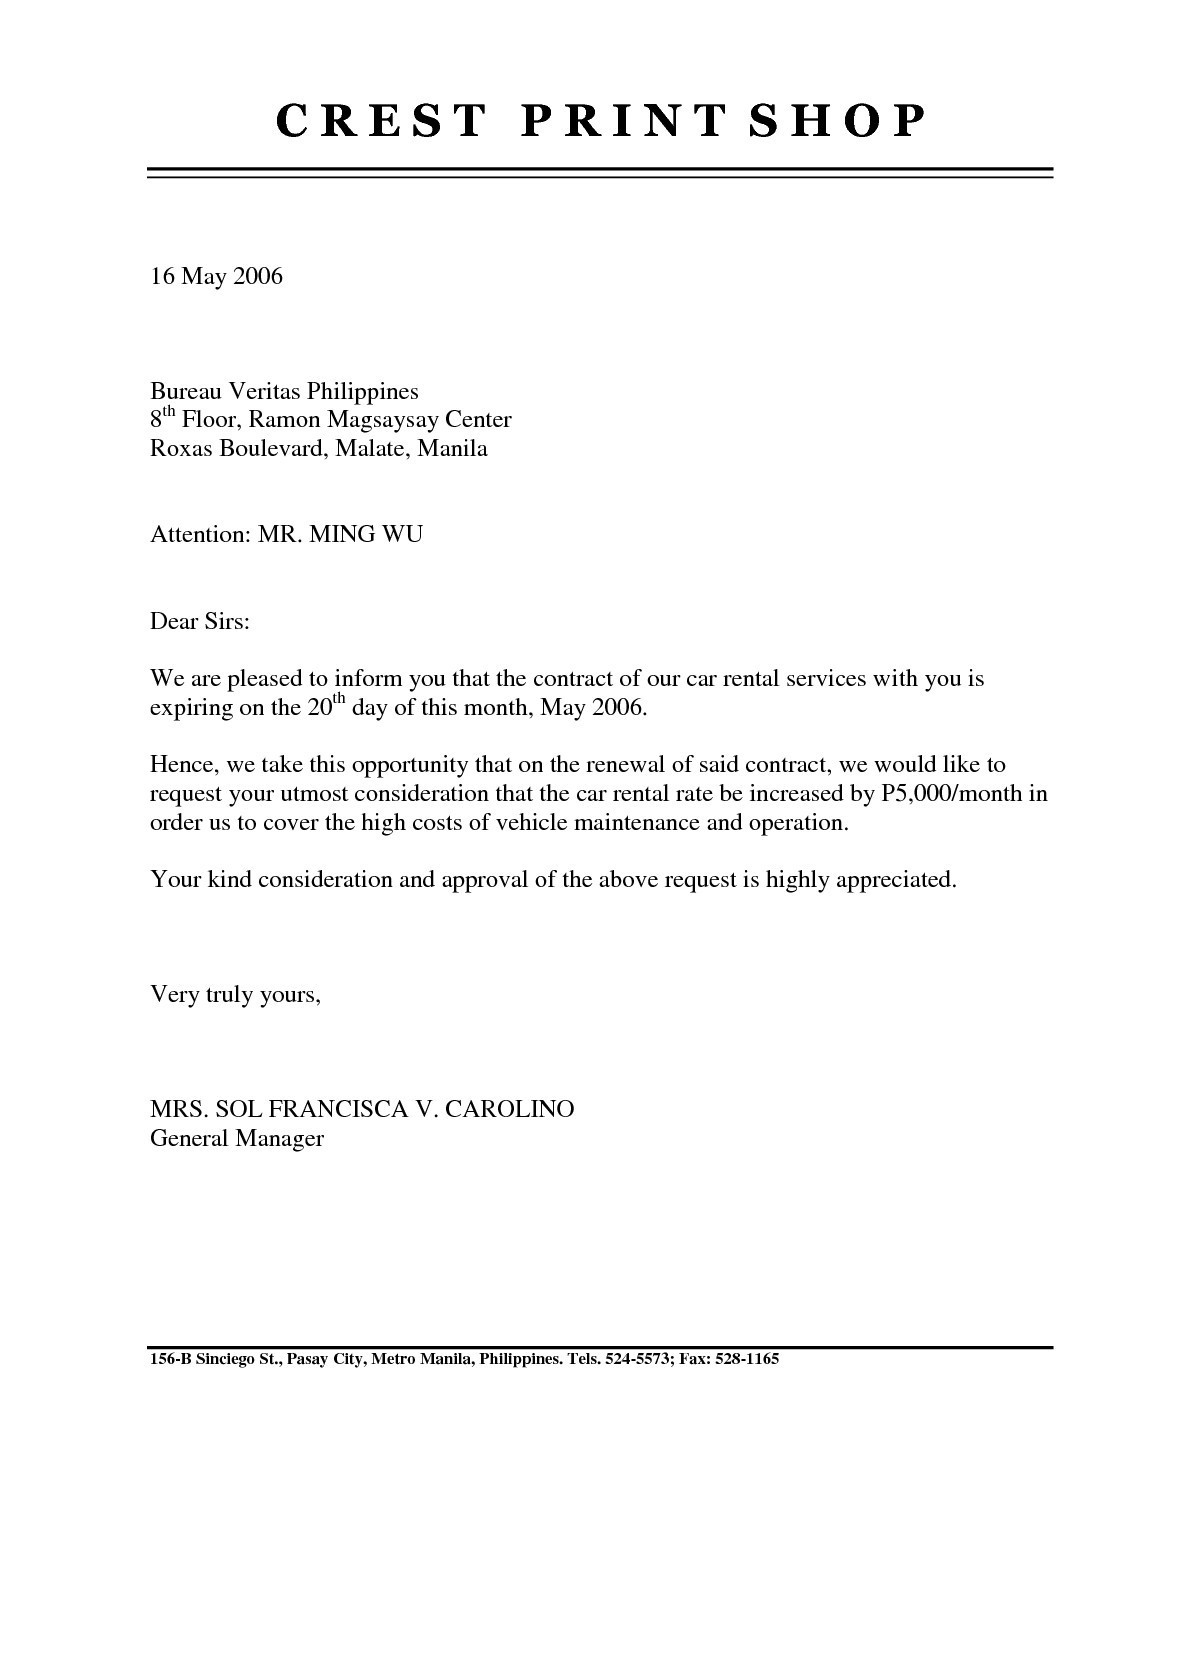 lease renewal letter to tenant template Collection-Lease Renewal Letter Template Tenancy Agreement Renewal Template Awesome Od Renewal Letter Sample 11-k